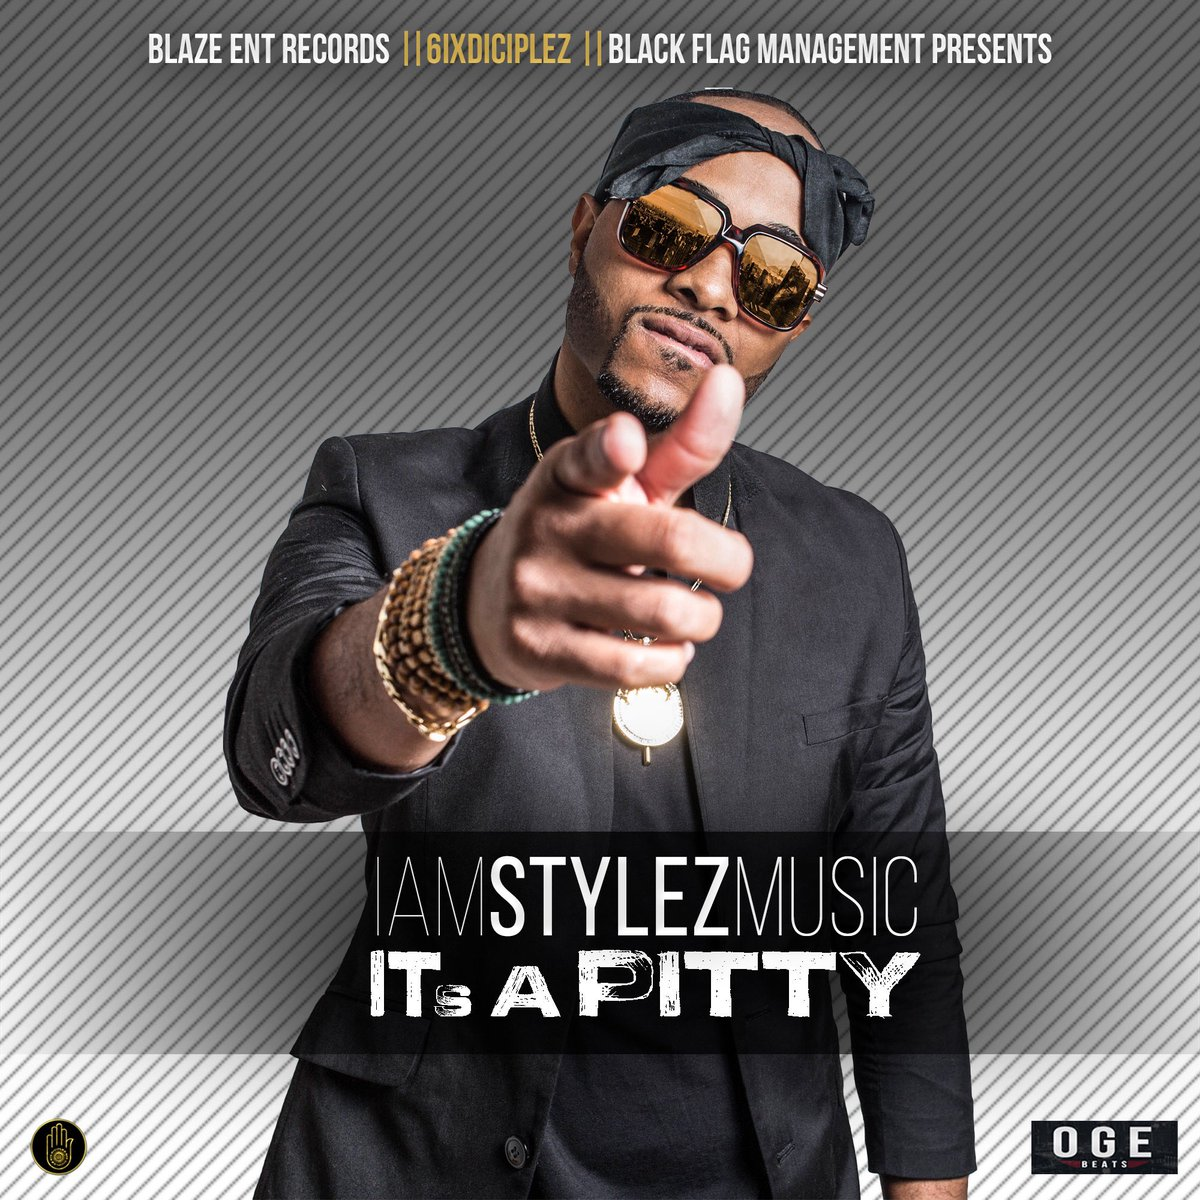 Yow @IAmStylezMusic WORLD PREMIER (OFFICIAL MUSIC VIDEO) TODAY AT 3pm. SUB TO https://t.co/8SVzTGhEOG #6ixDiciplez https://t.co/L82dNRxkrj